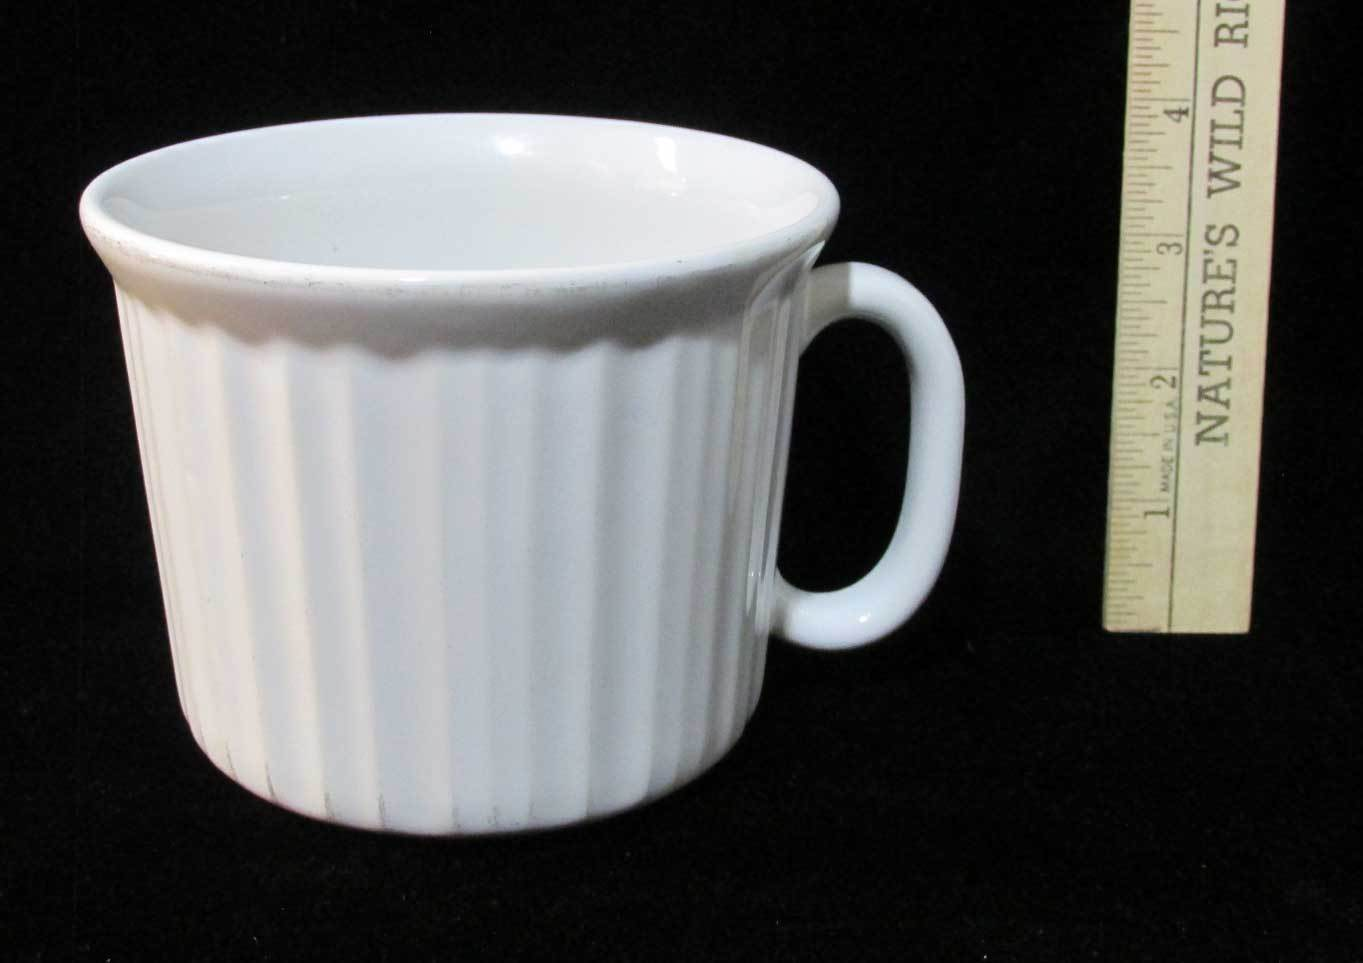 Corning Ware Large Soup Mug Cup Bowl White and similar items